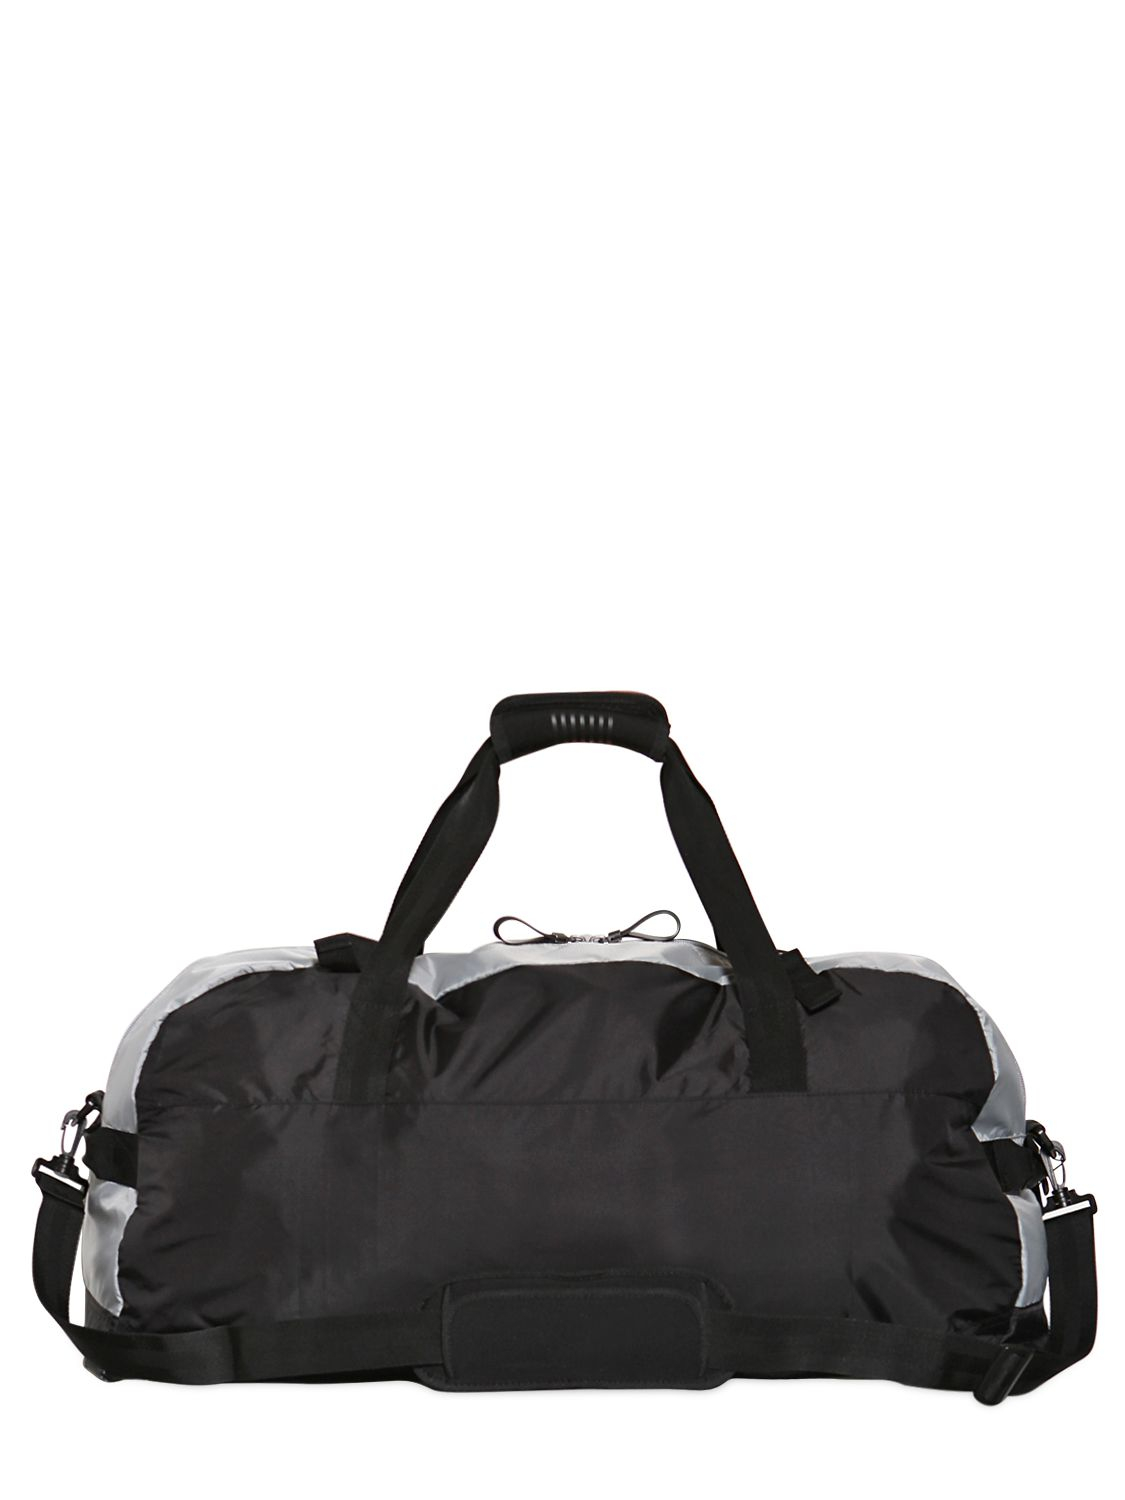 879bfe77d0fb Lyst - Emporio Armani Two Tone Ripstop Sport Duffle Bag in Black for Men